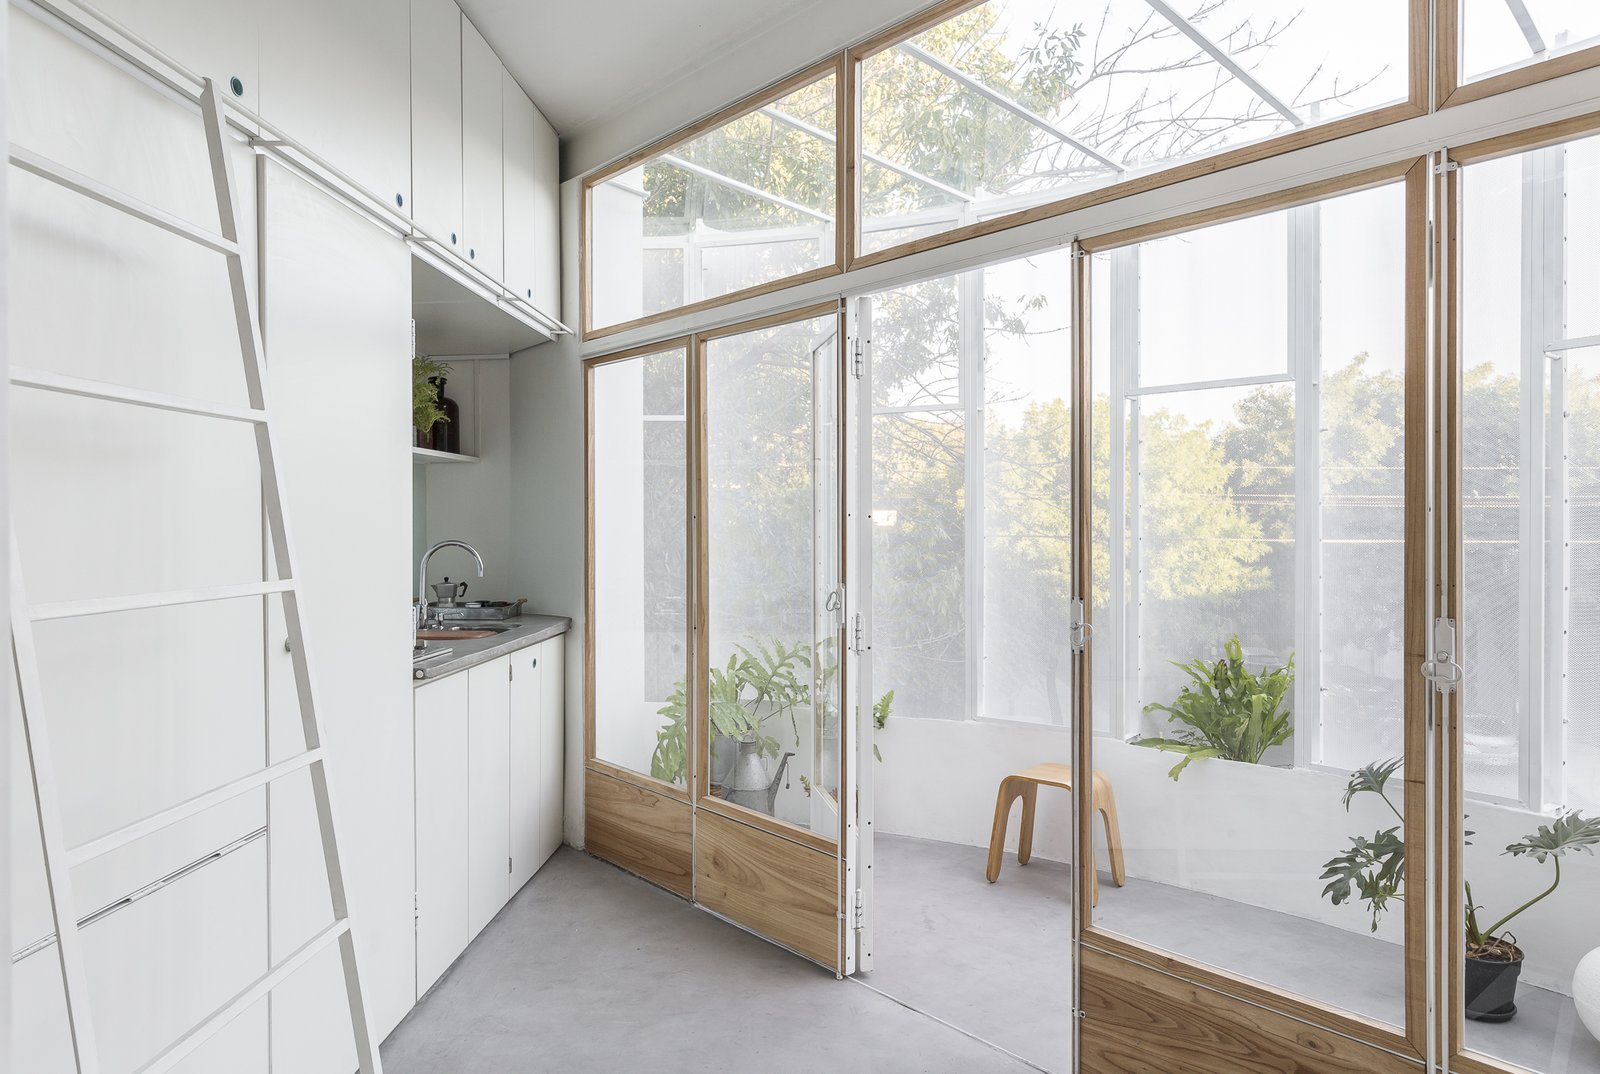 Kitchen, White, Concrete, Laminate, and Undermount Glazed, timber-framed folding doors separate the interior living area from the balcony.   Best Kitchen White Undermount Laminate Photos from A Perforated Balcony Brings Ample Light Into a Tiny Abode